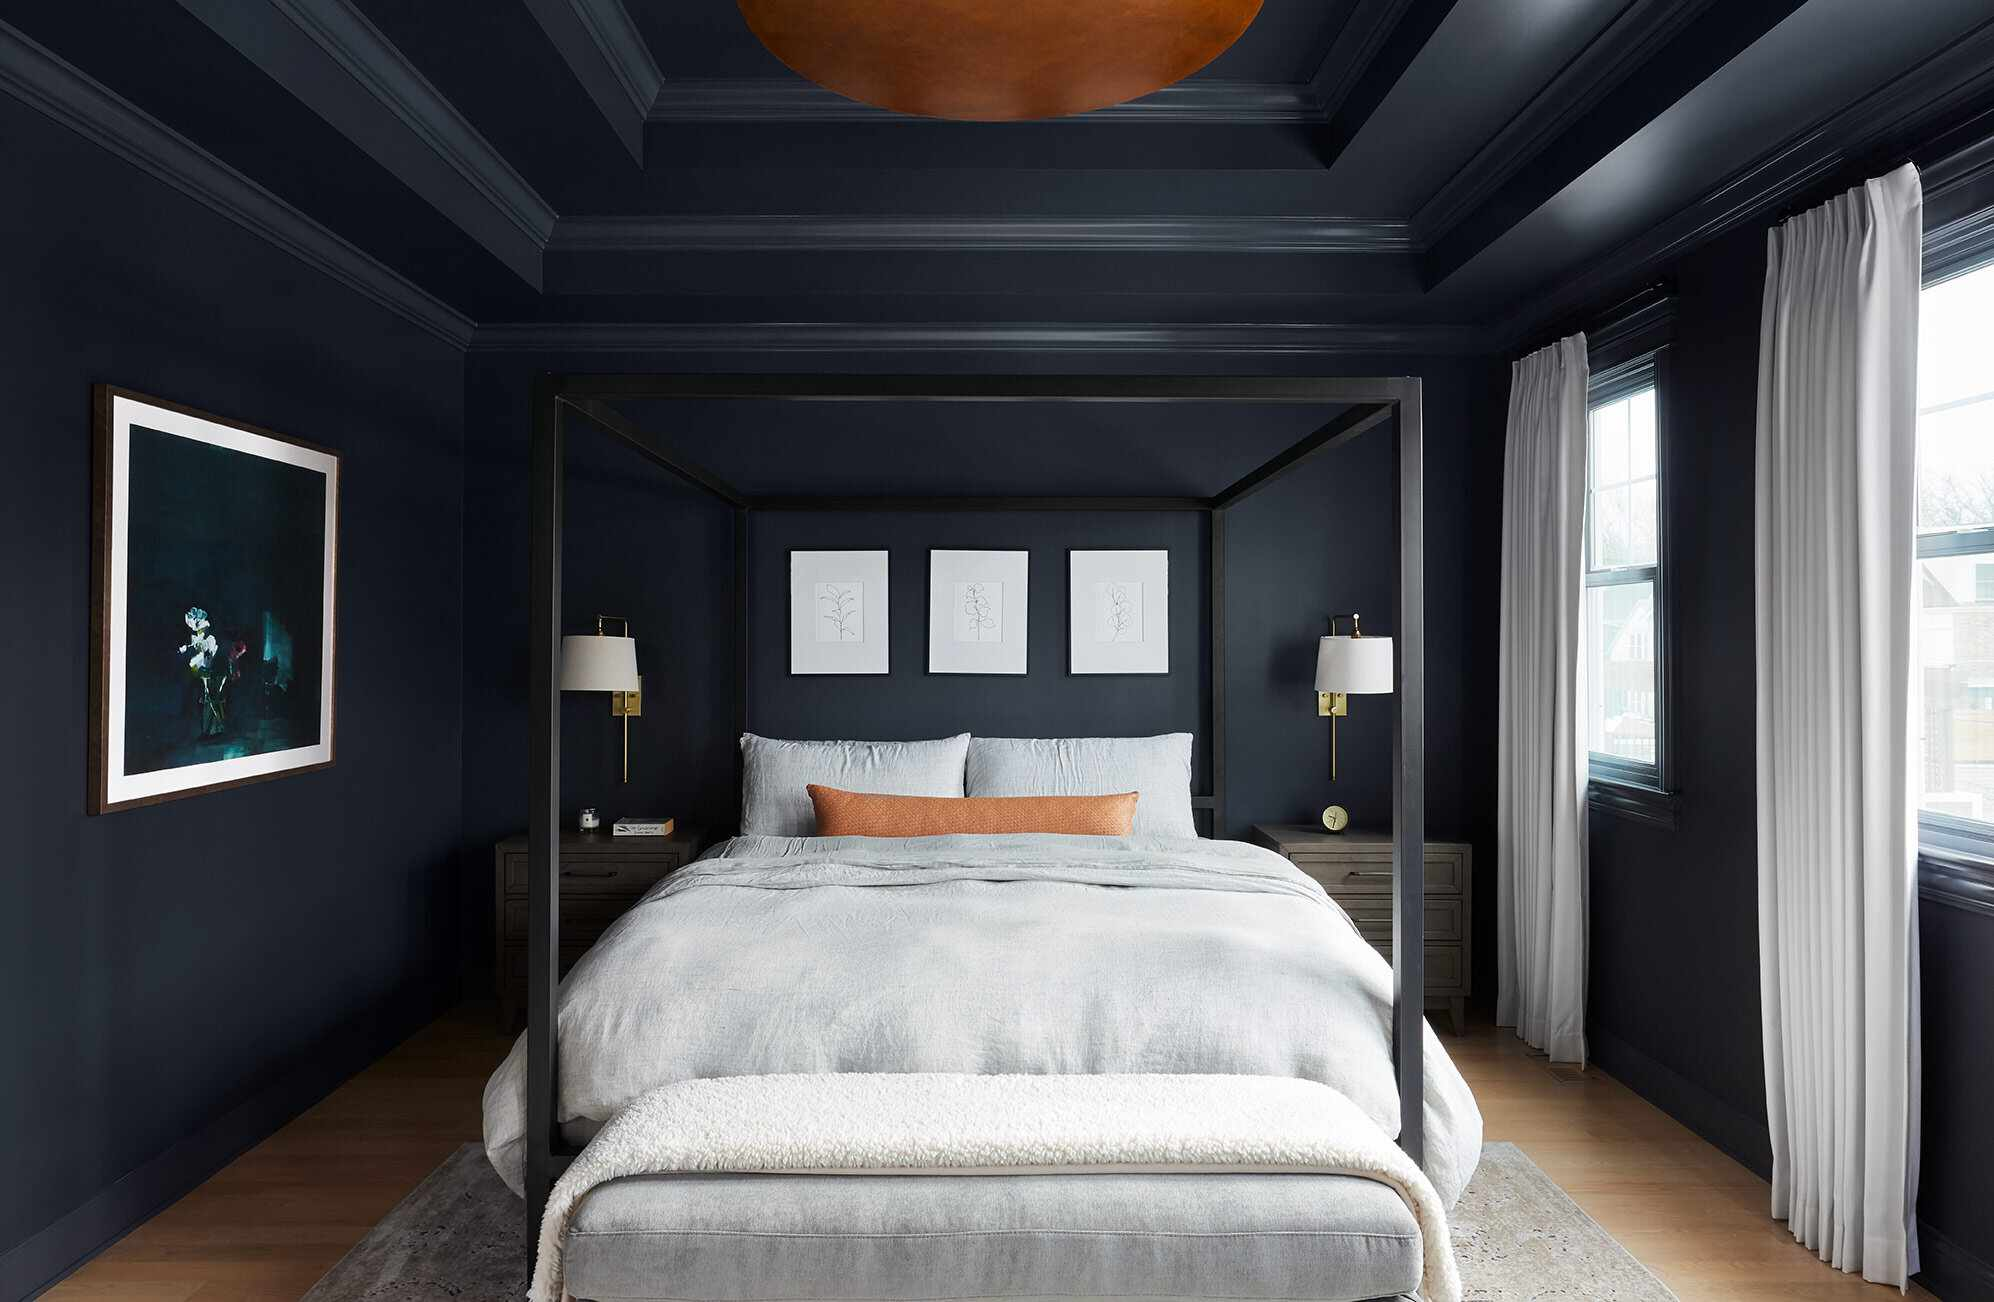 A black bedroom with a black canopy bed